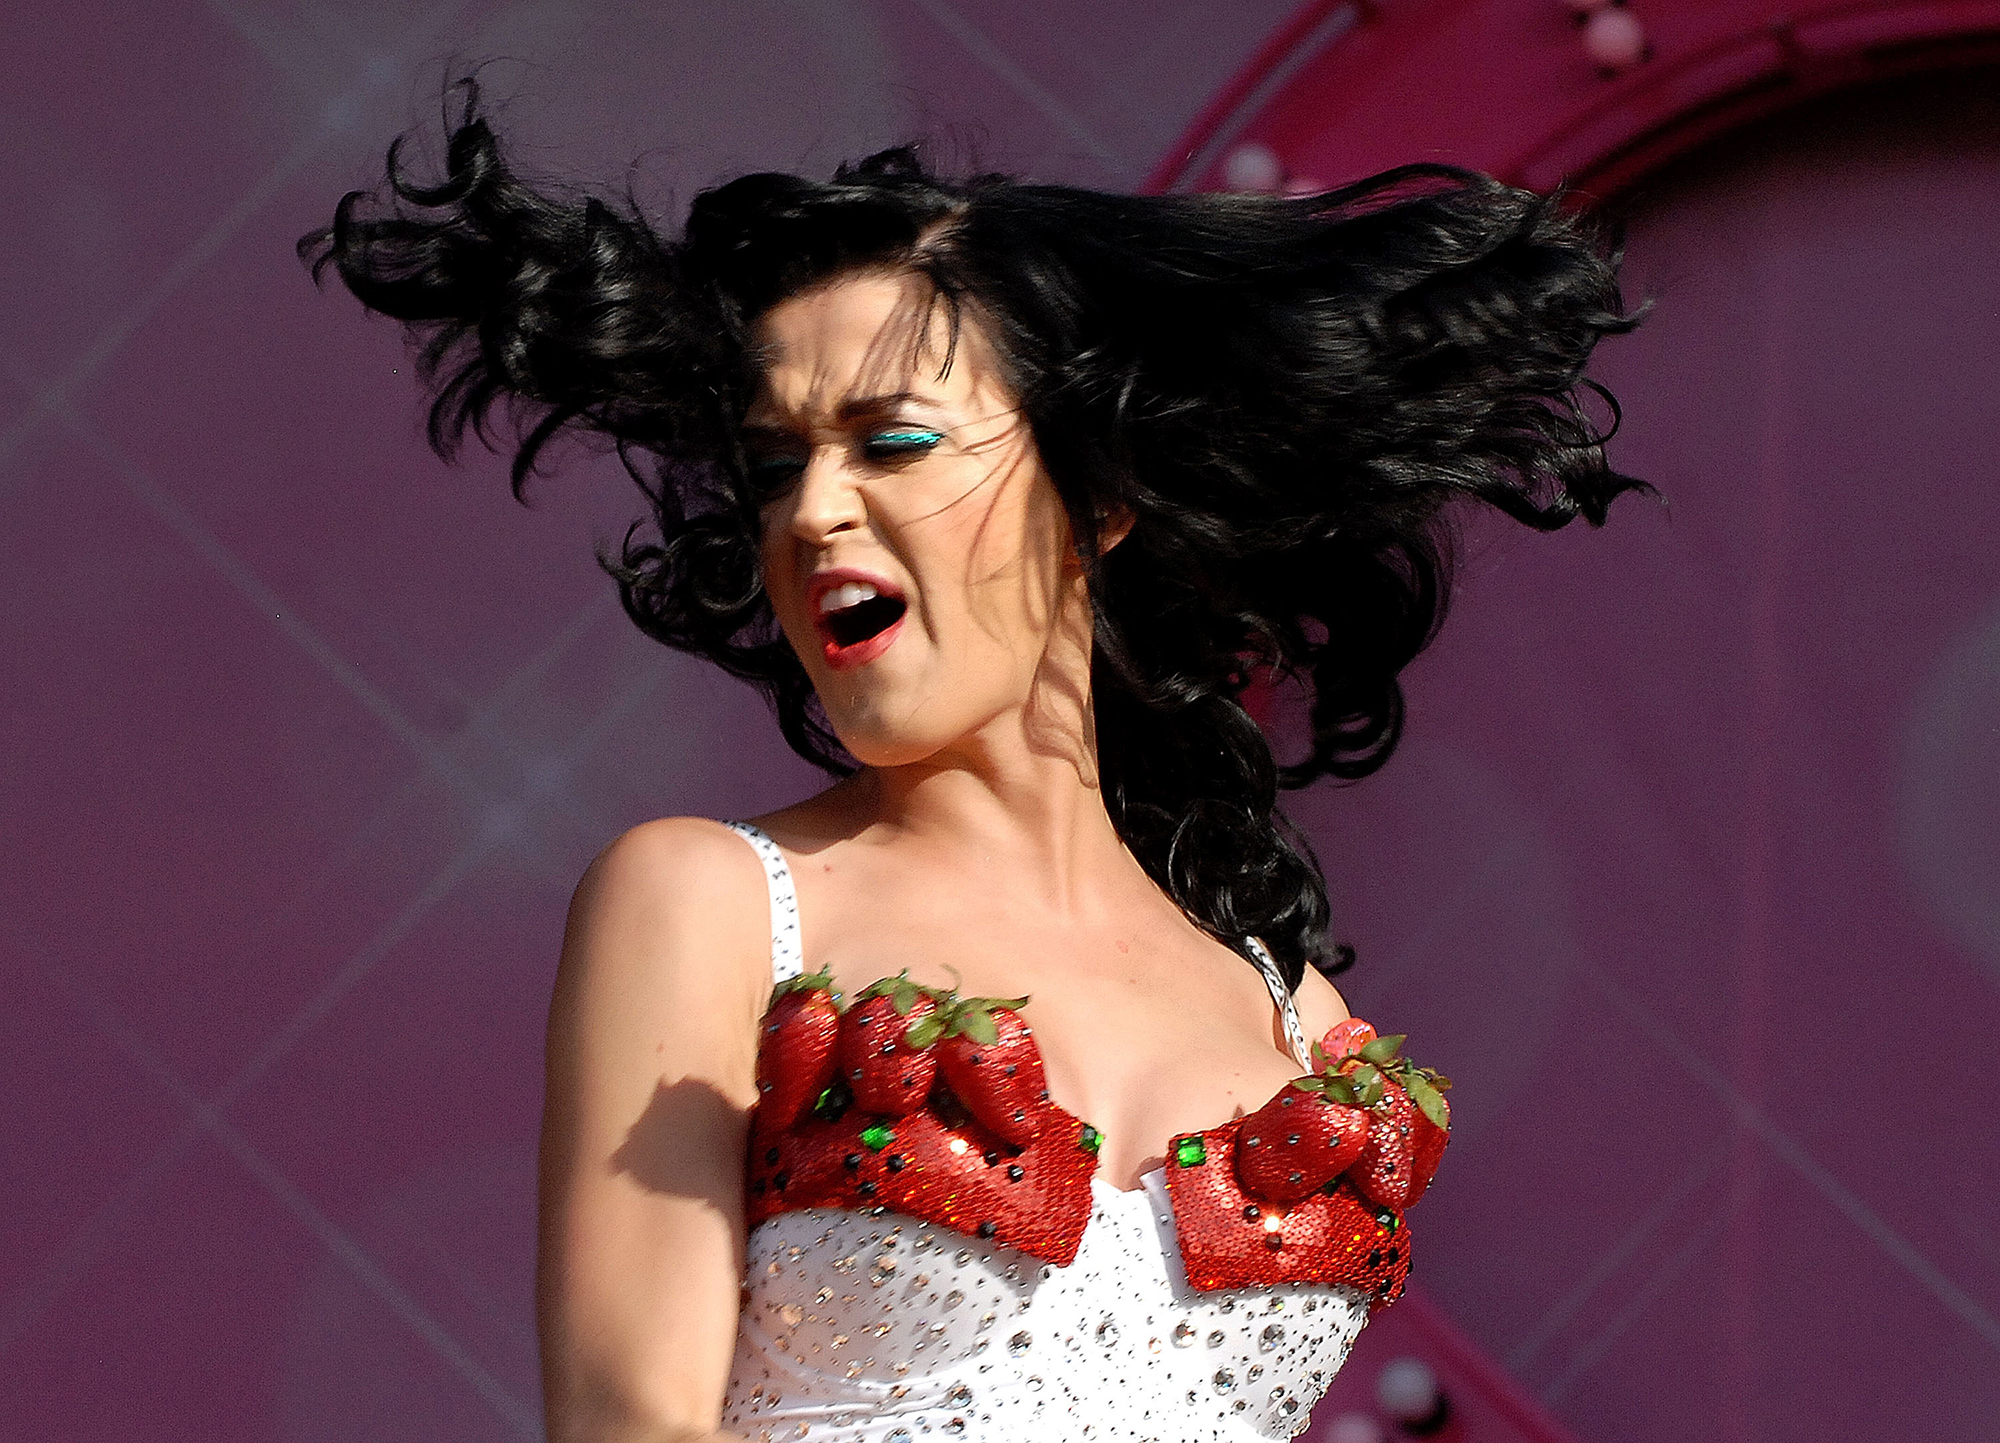 Katy Perry Dressed as Food - To take part in England's V Festival in August 2009, the singer wore a white and red outfit with strawberry-esque details. The bust even featured realistic seeds and life-size versions of the fruit.